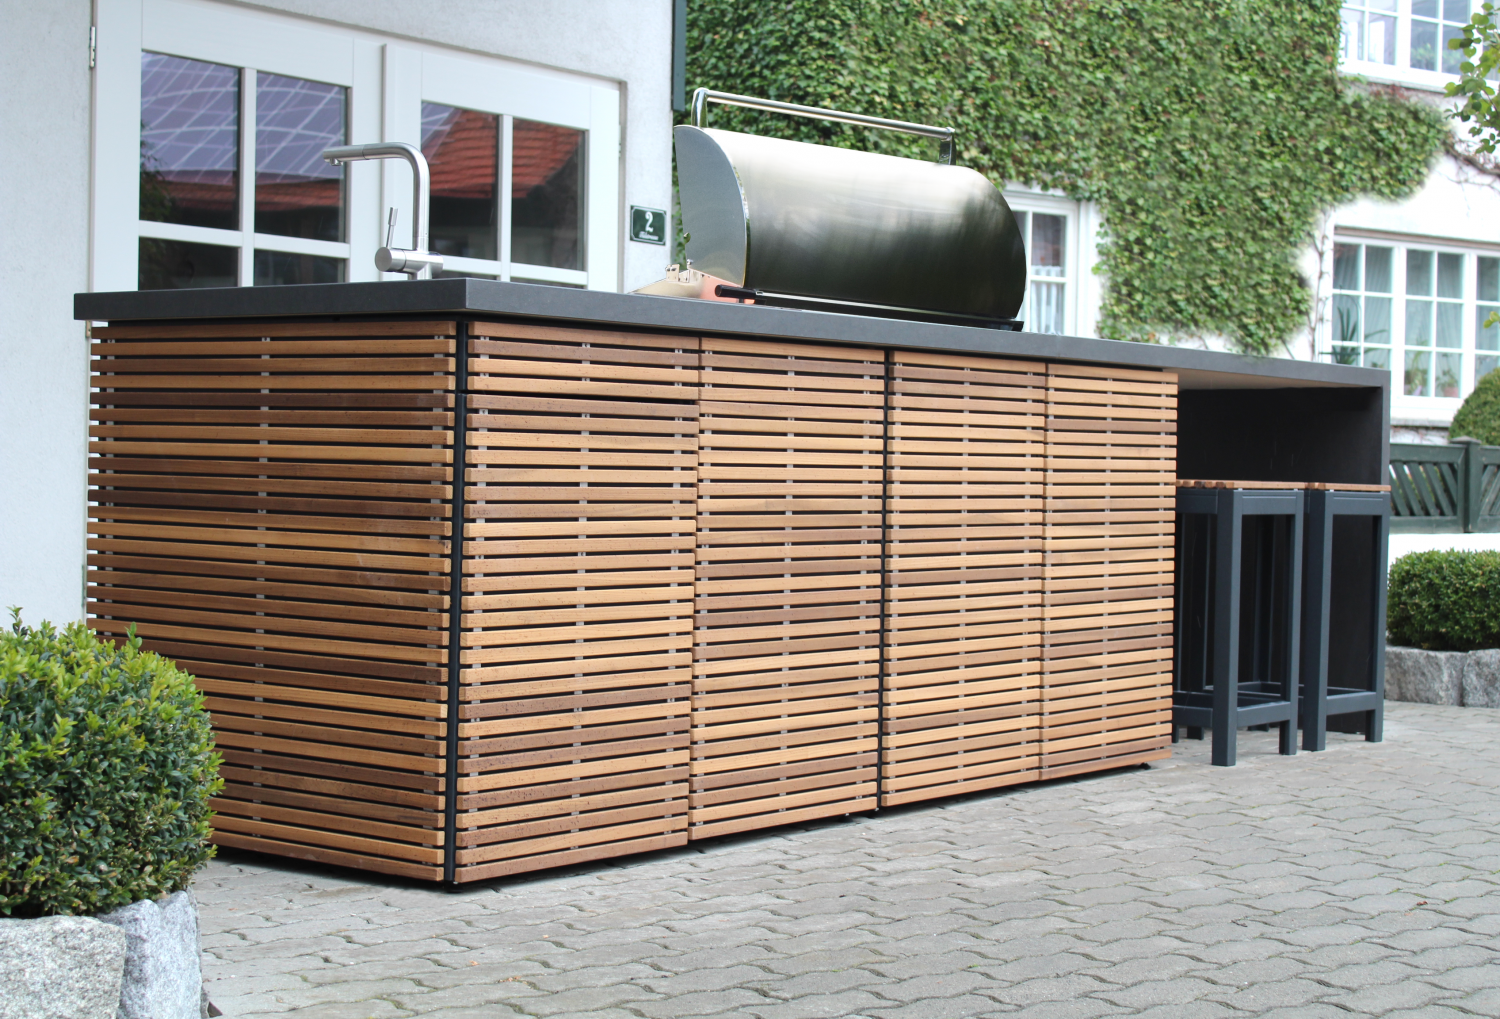 CUNIC Modular Outdoor Kitchen